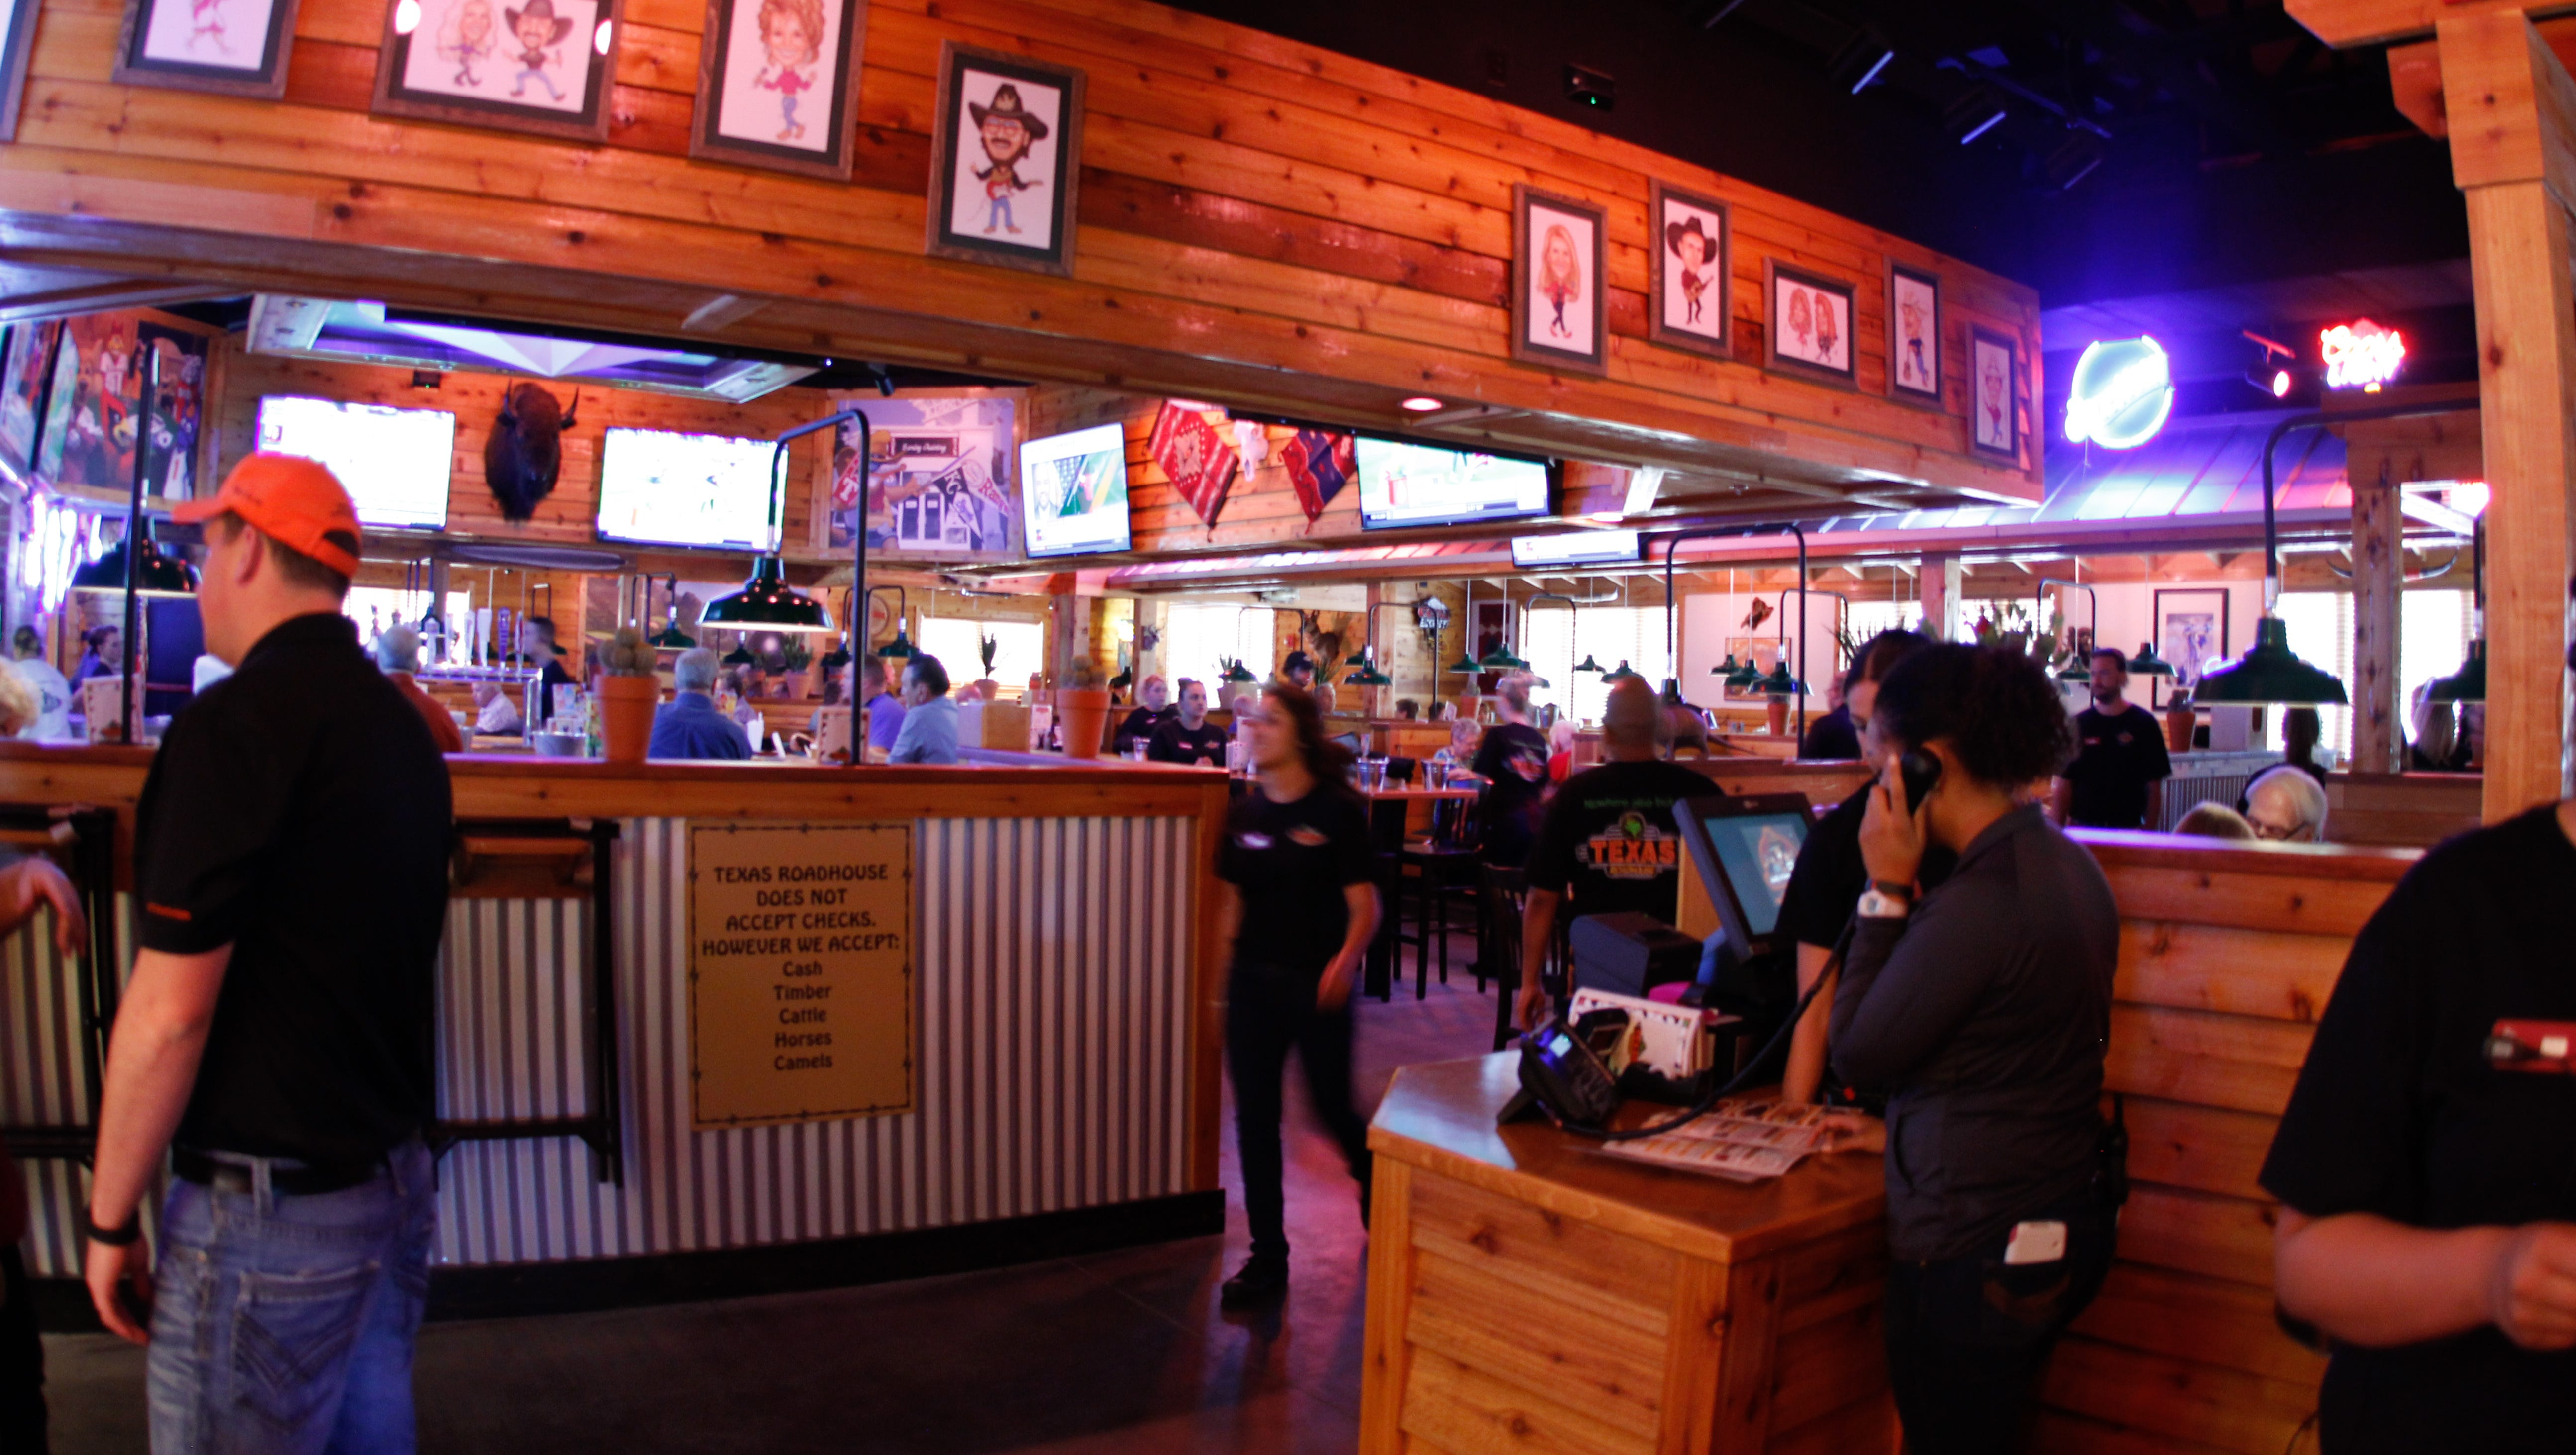 Texas Roadhouse Kneaders Among New Businesses To Open In Surprise